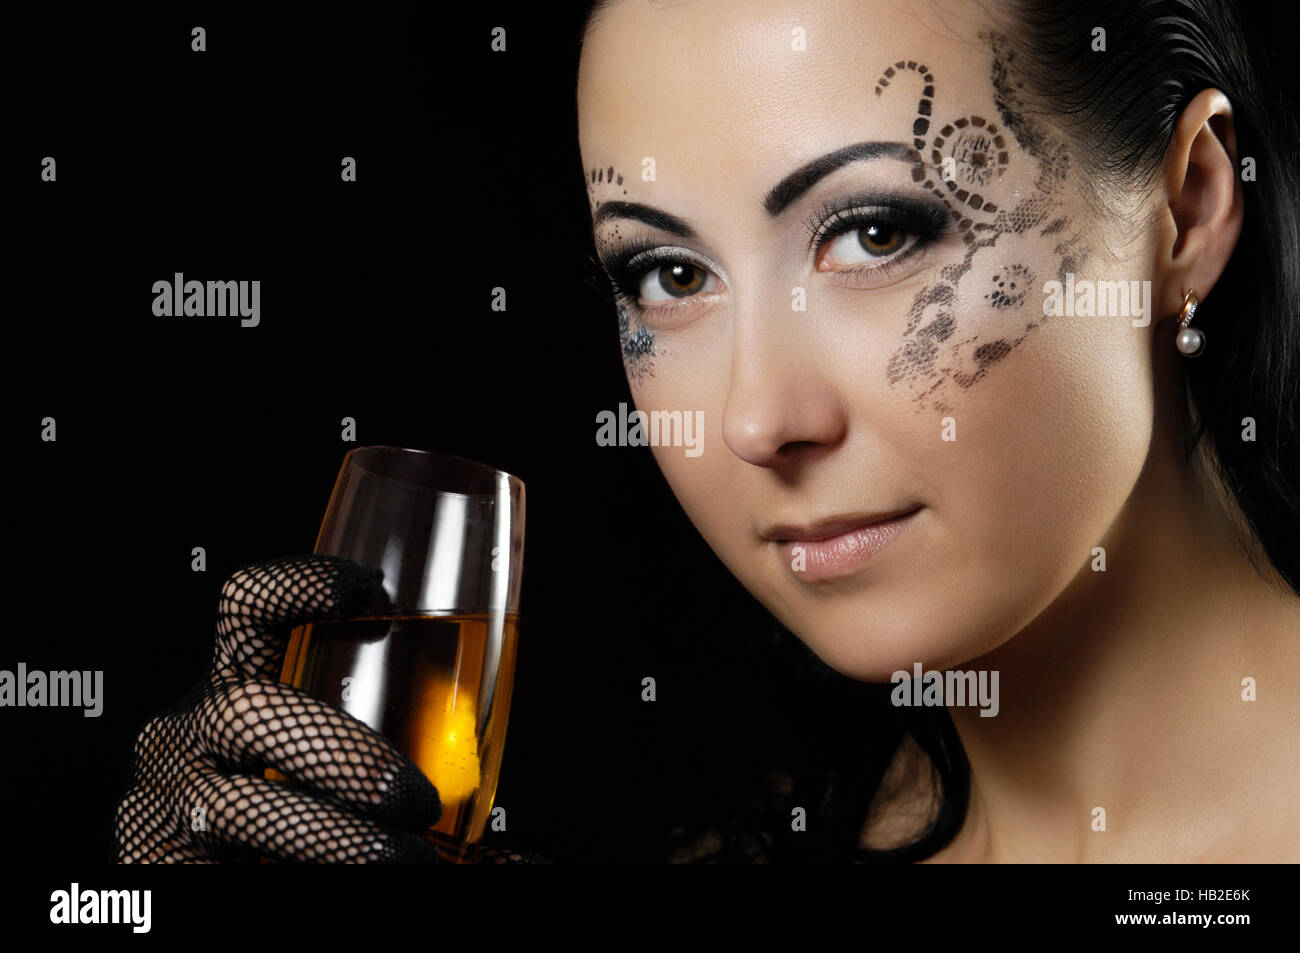 Beautiful woman with a romantic expression and creatively stencilled make-up holding a glass of wine - Stock Image